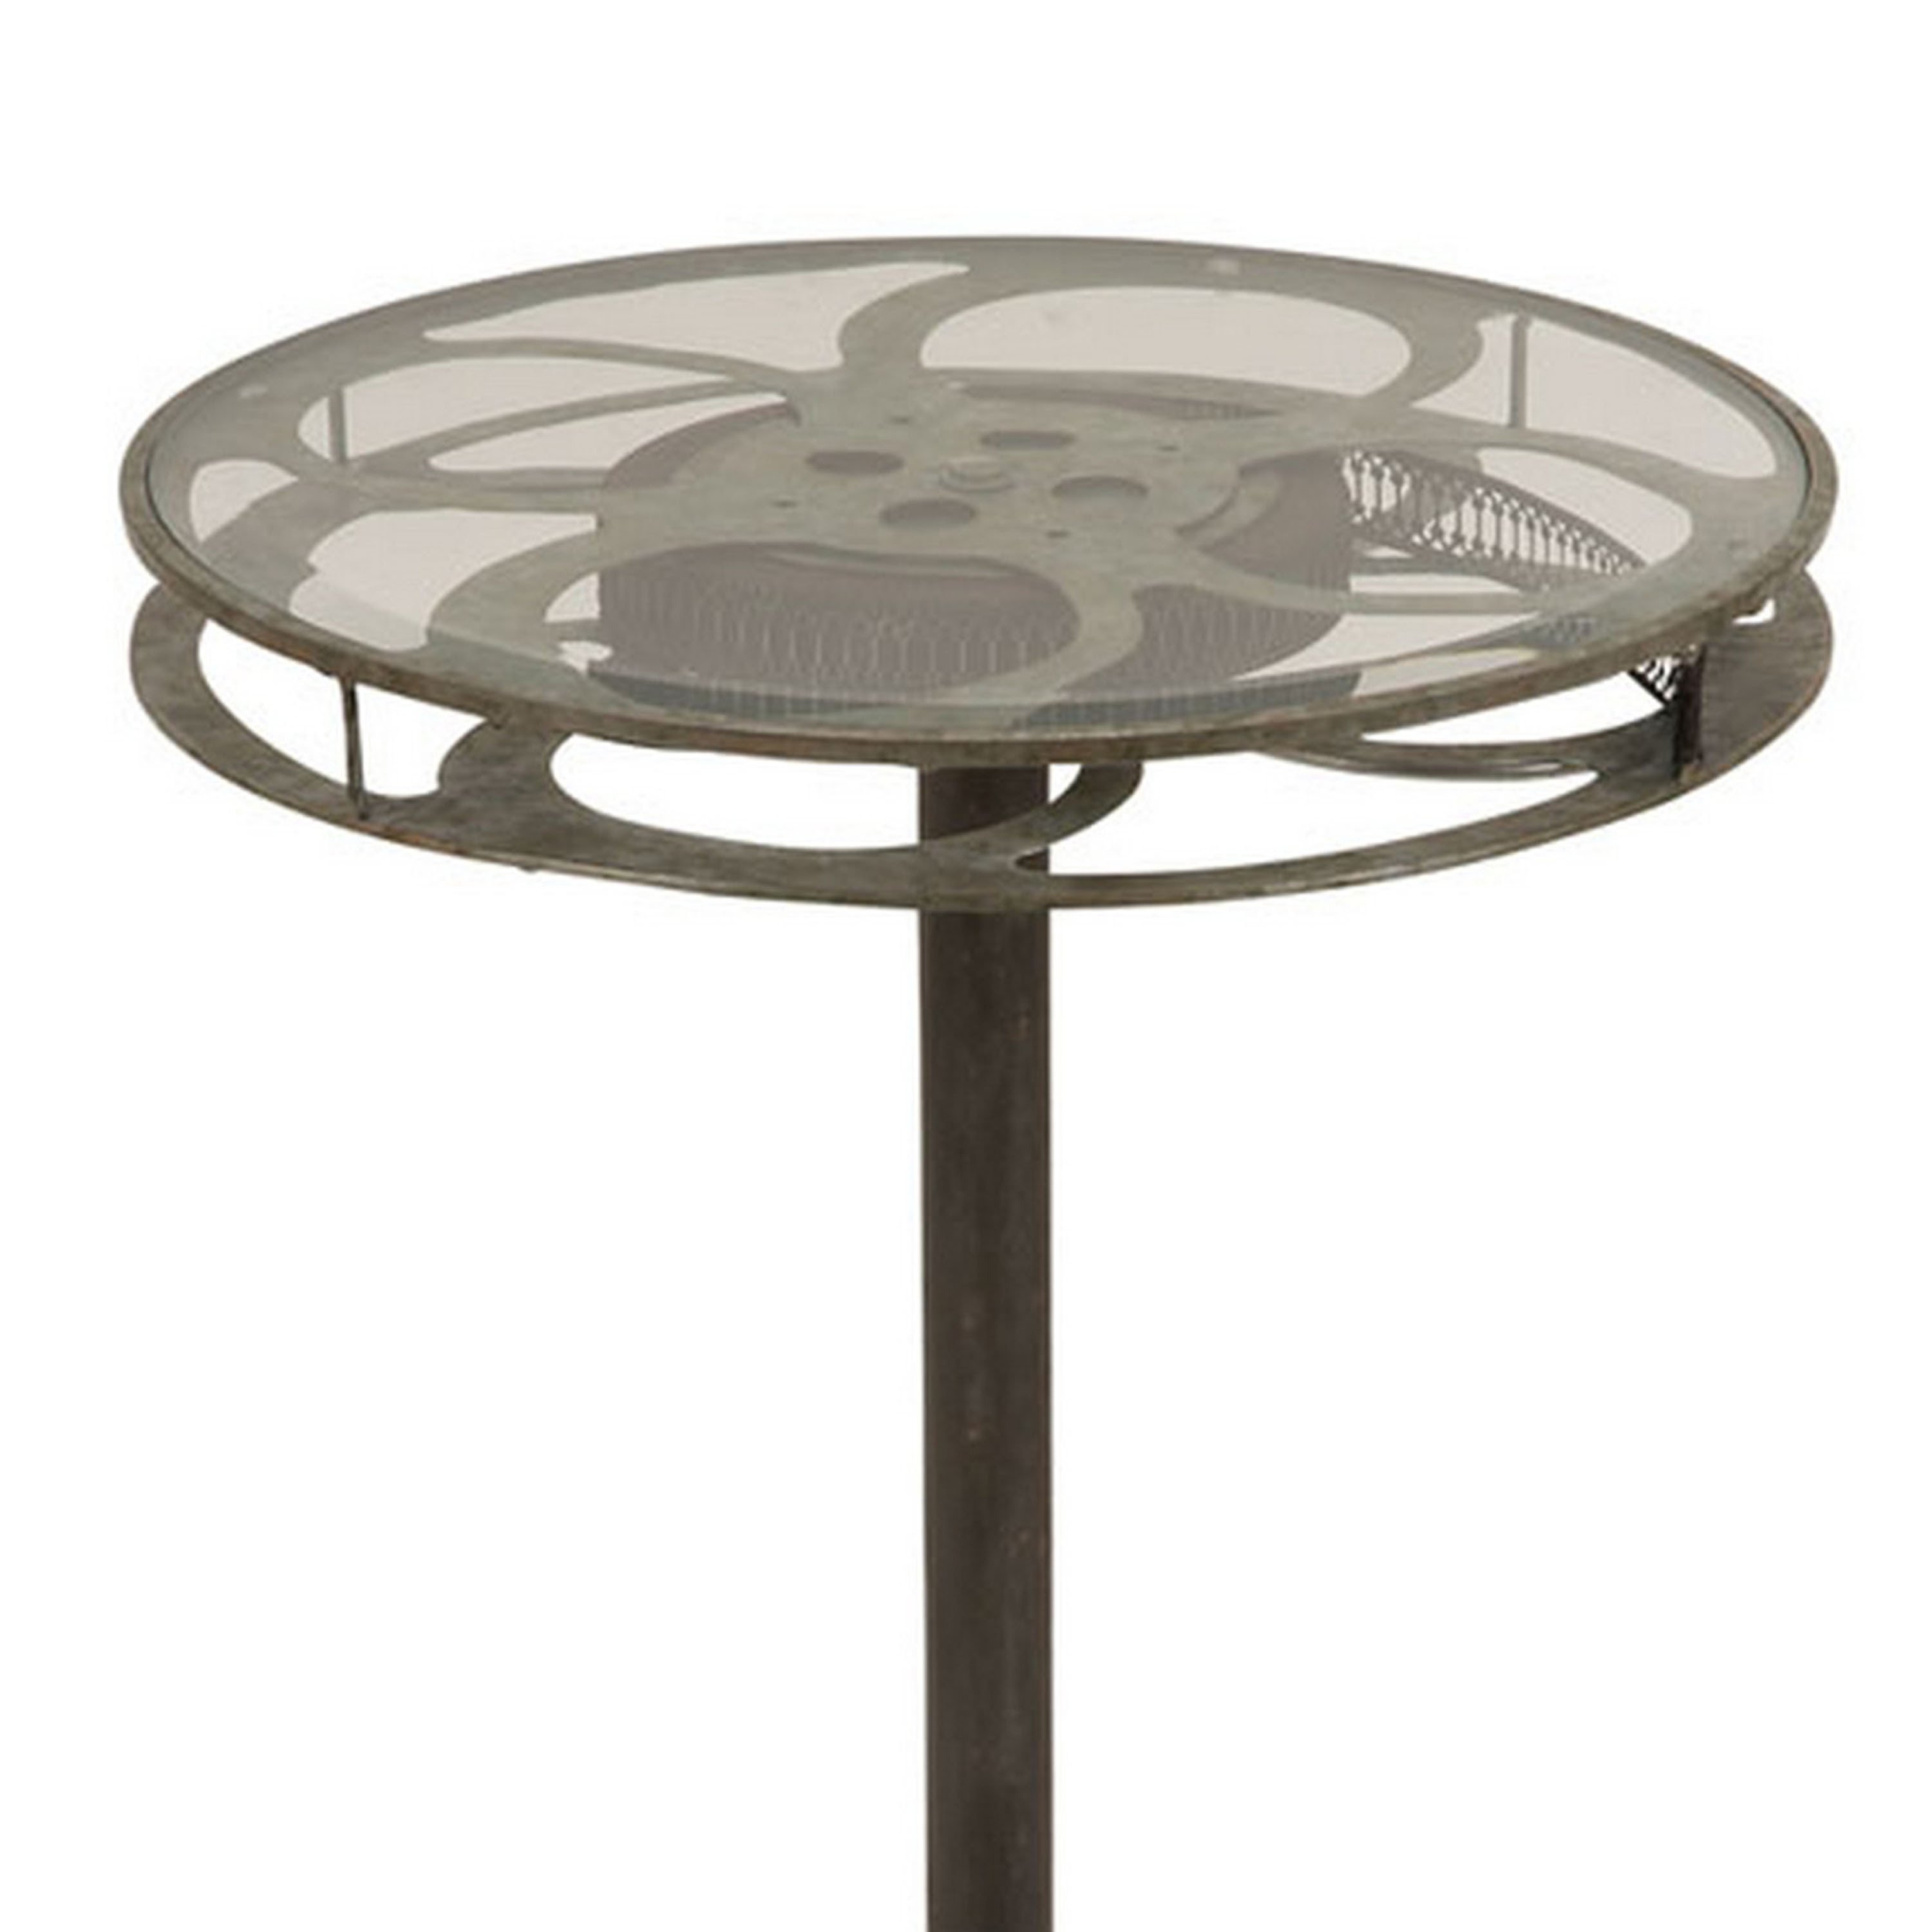 holllywood vintage film reel inch round top table free metal accent cardboard shipping today gold bedside retro console bedroom furniture packages drop leaf kitchen and chairs